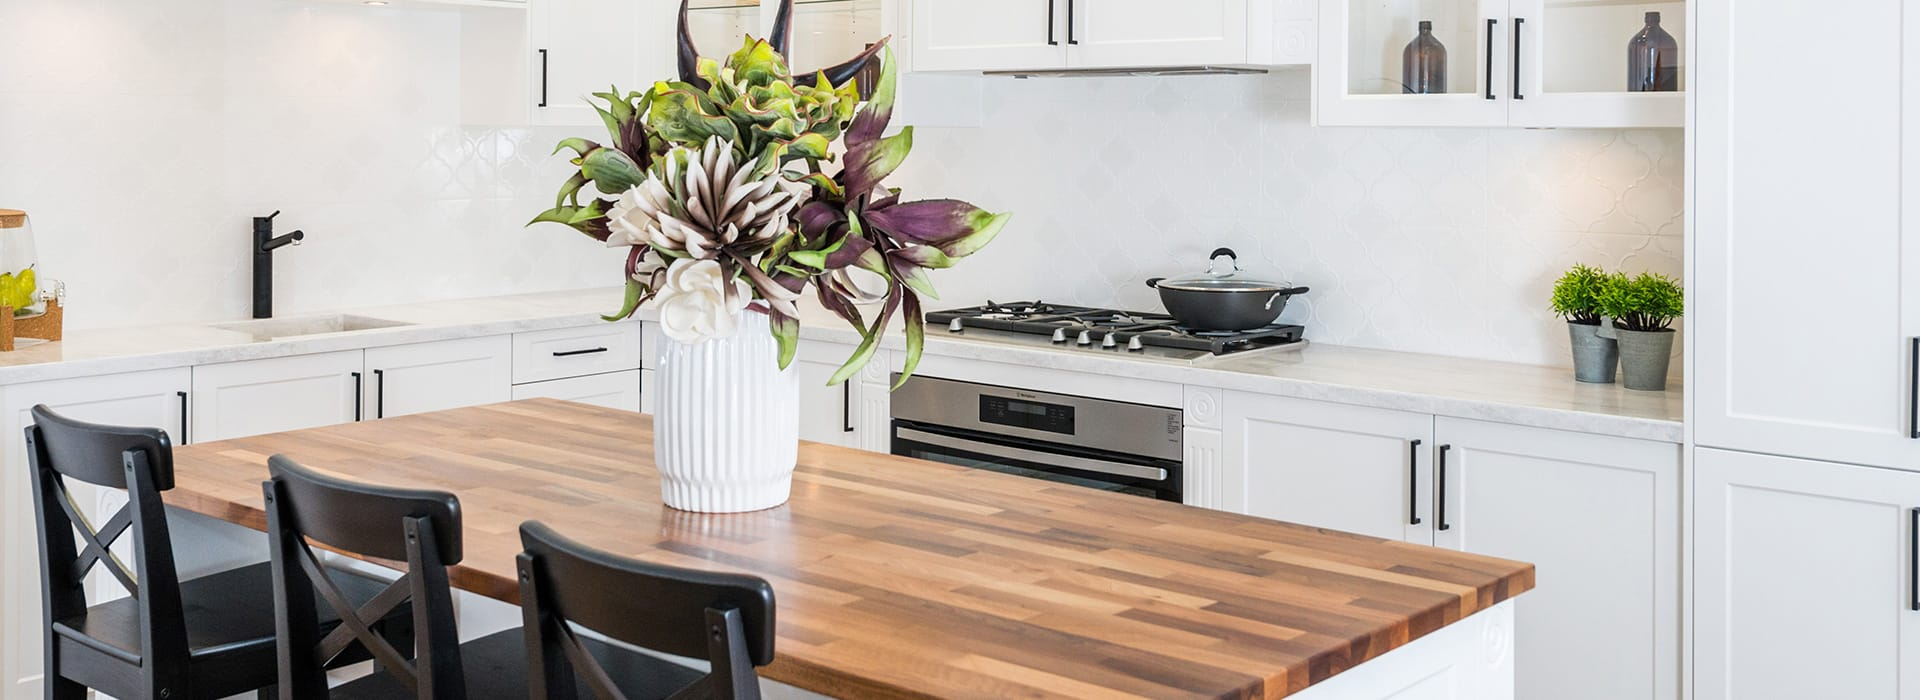 Uncategorized Brisbane Kitchen Design kitchen connection design brisbane and queensland limited store offer